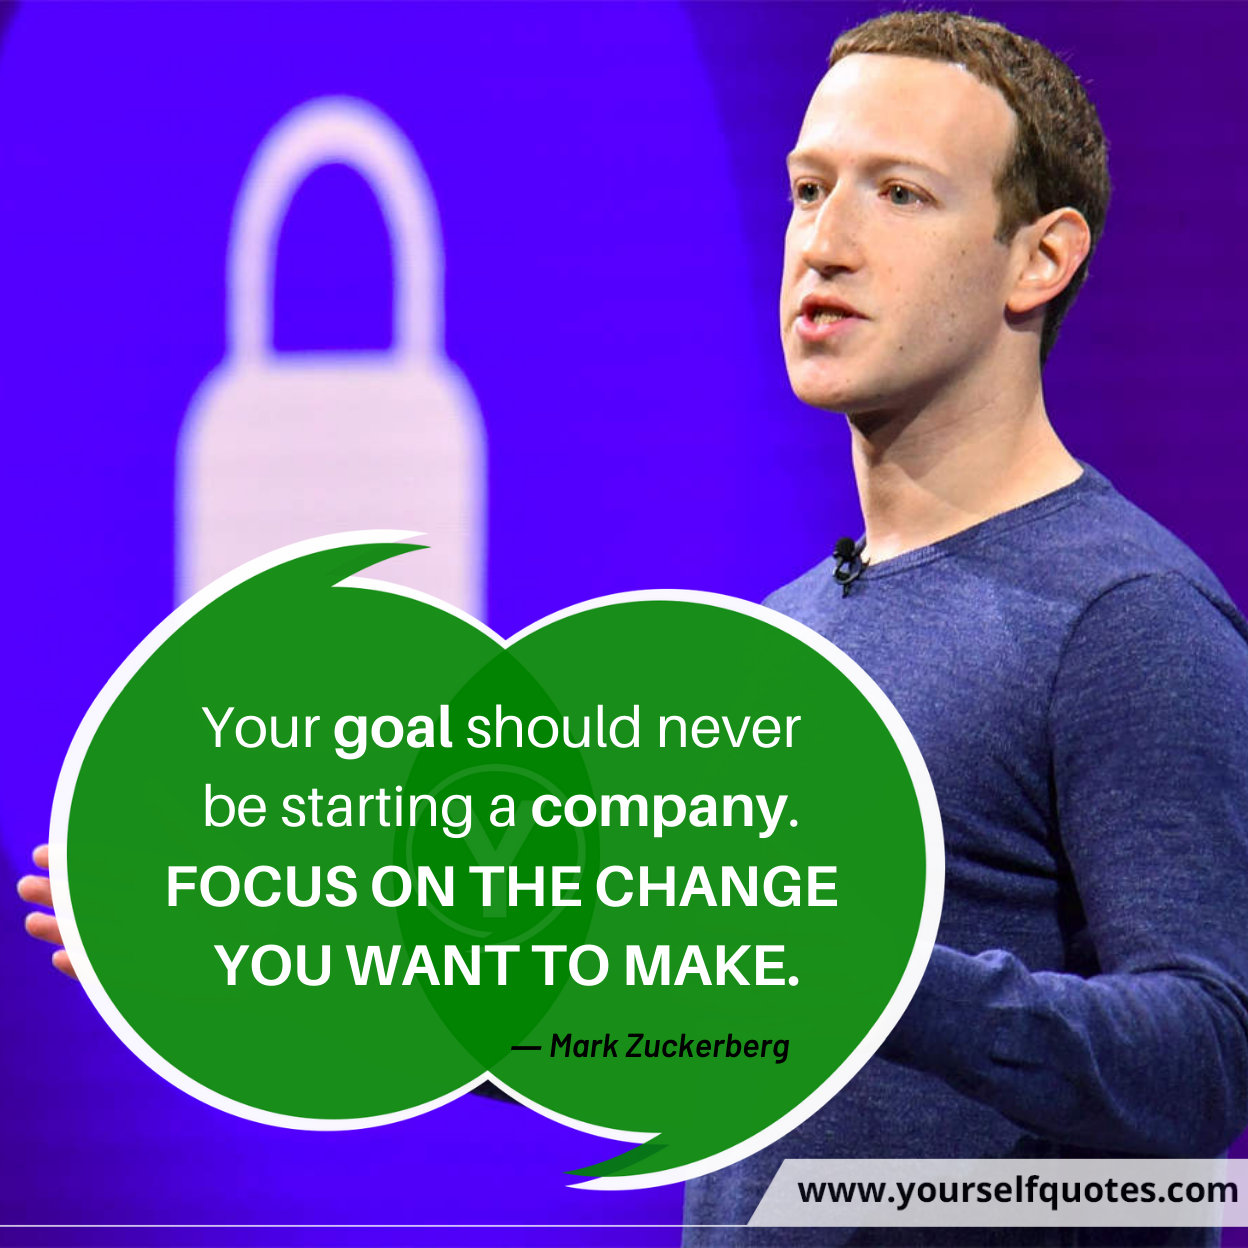 Motivational Quotes Images by Mark Zuckerberg